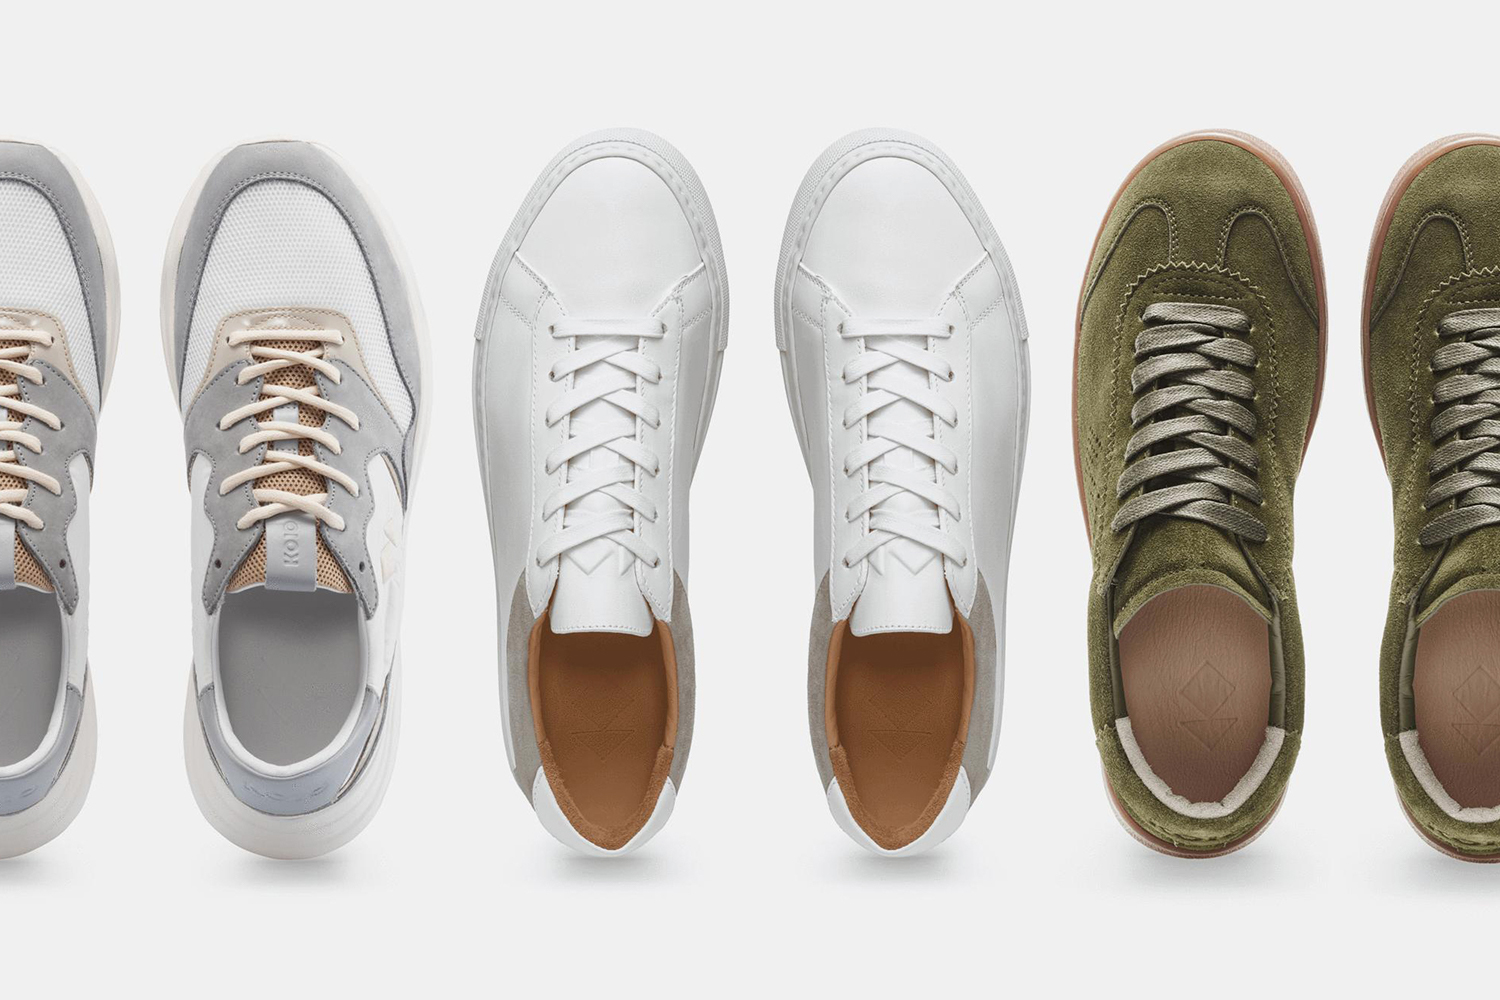 Koio men's sneakers on sale including the Avalanche, Capri and Tempo